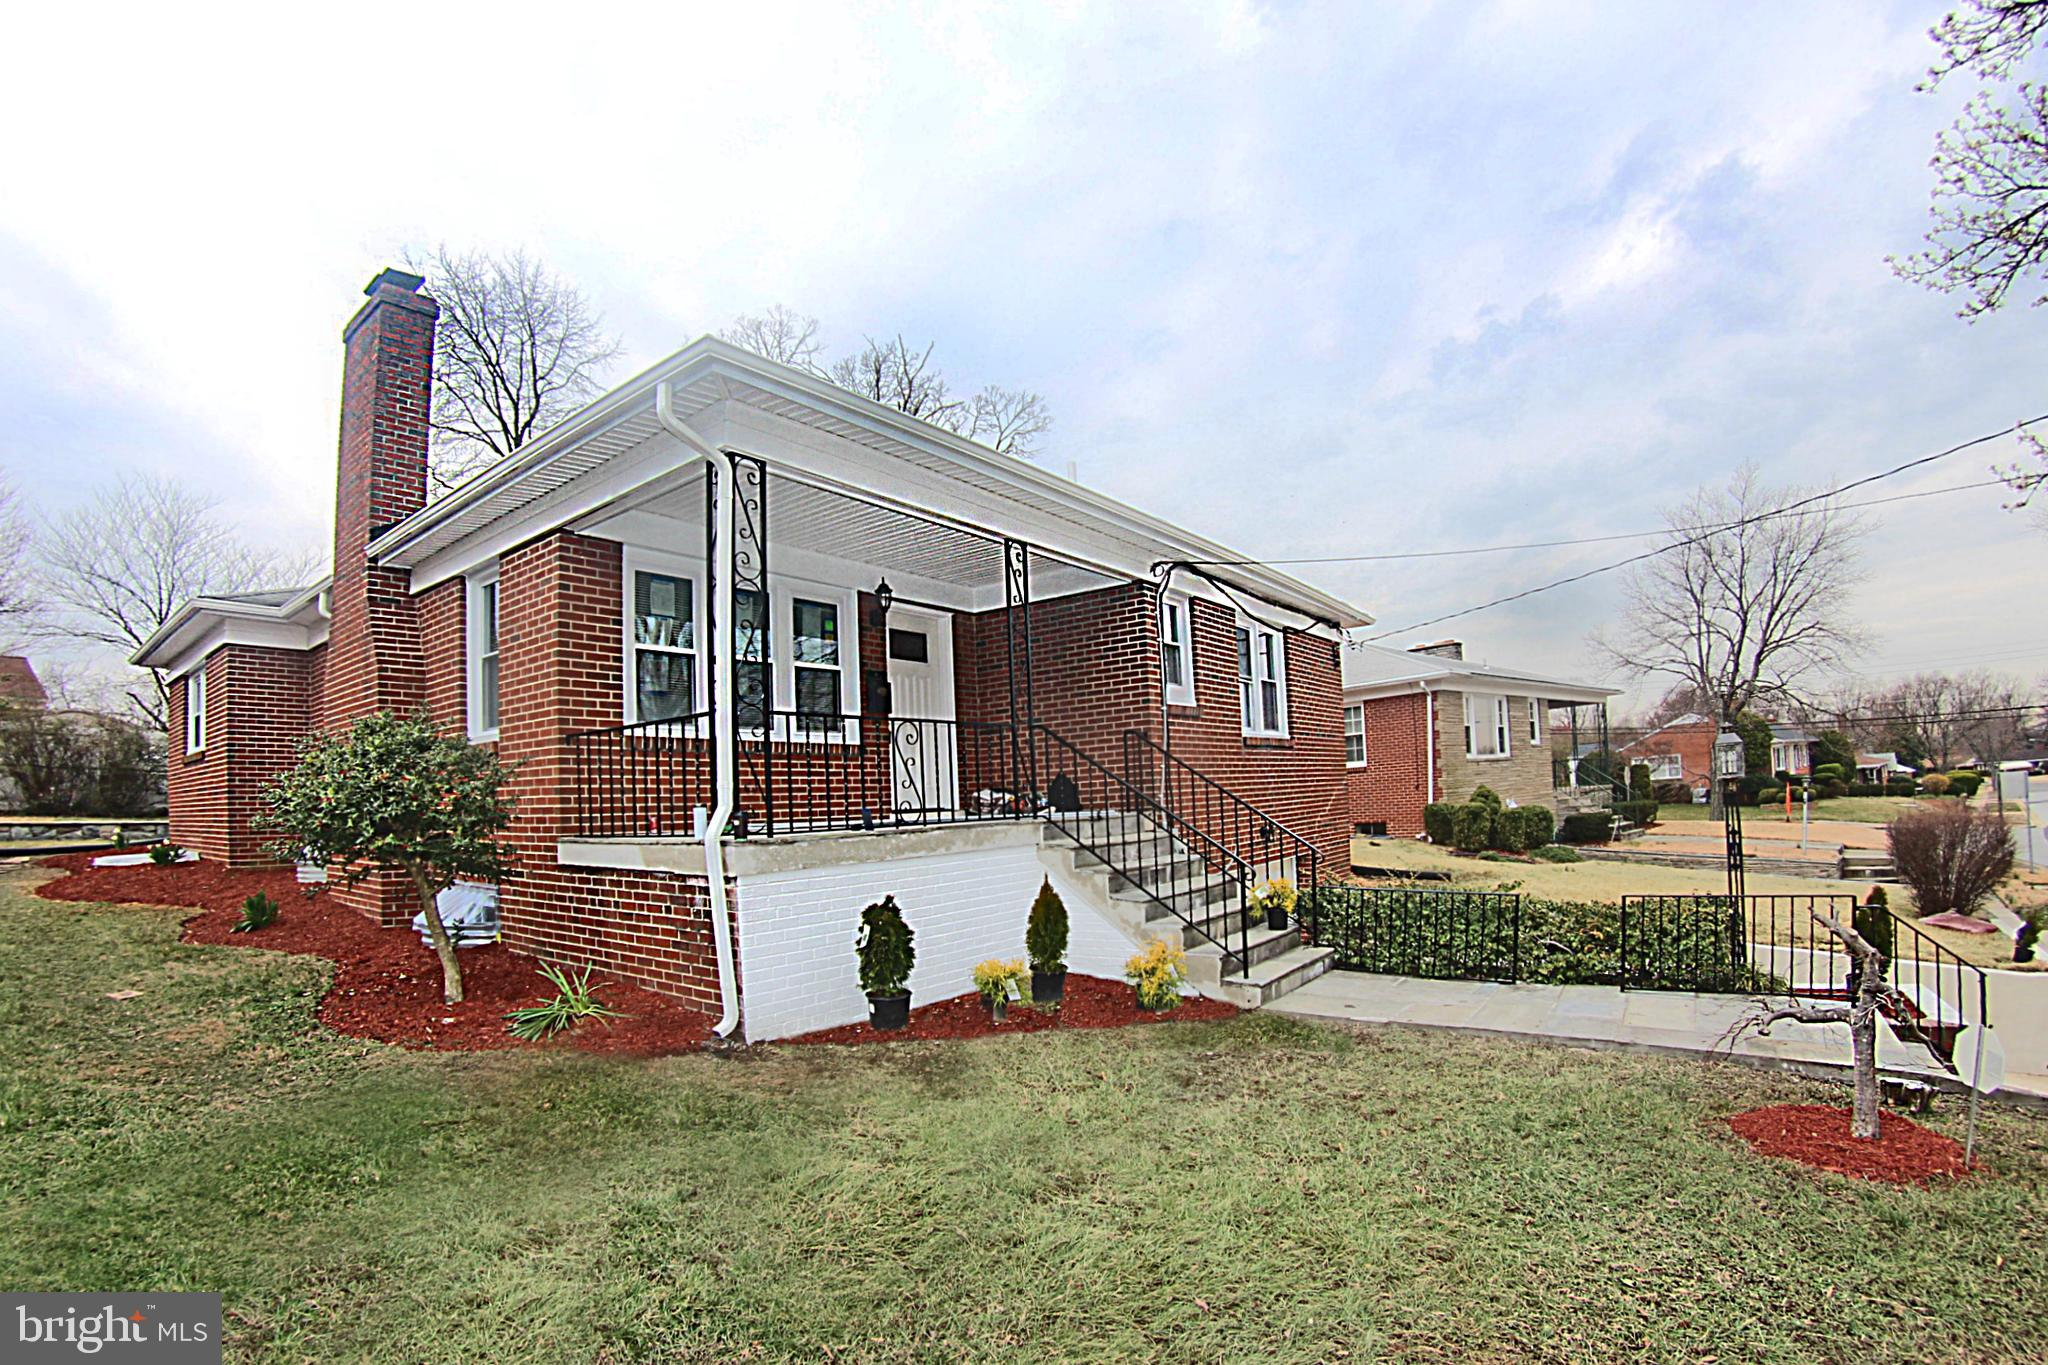 2103 JAMESON STREET, TEMPLE HILLS, MD 20748